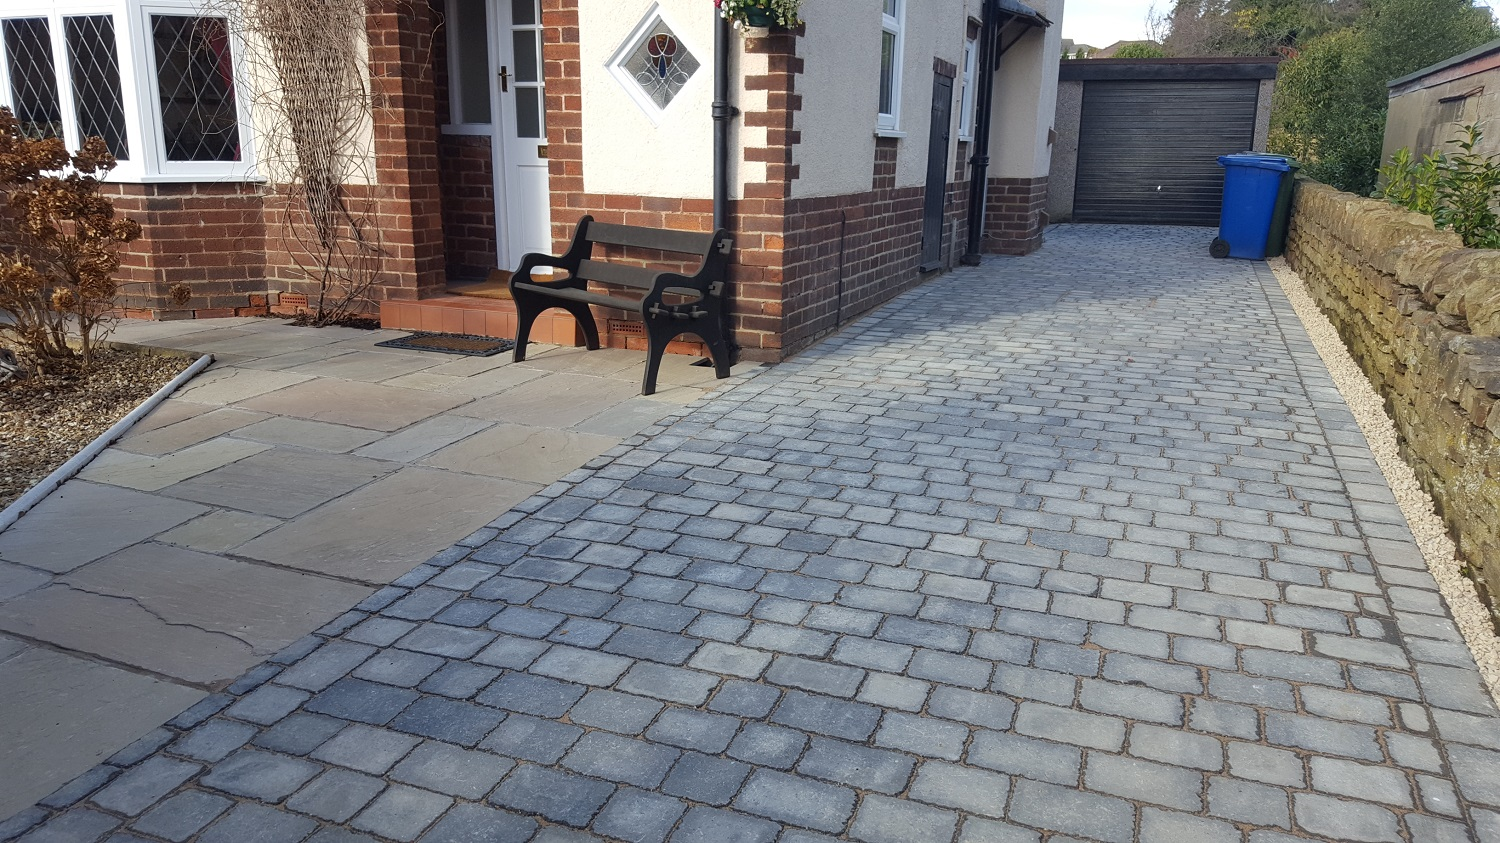 C1 Plaspave Sorrento Granite Stone Block Paving Driveway at Somersall in Chesterfield